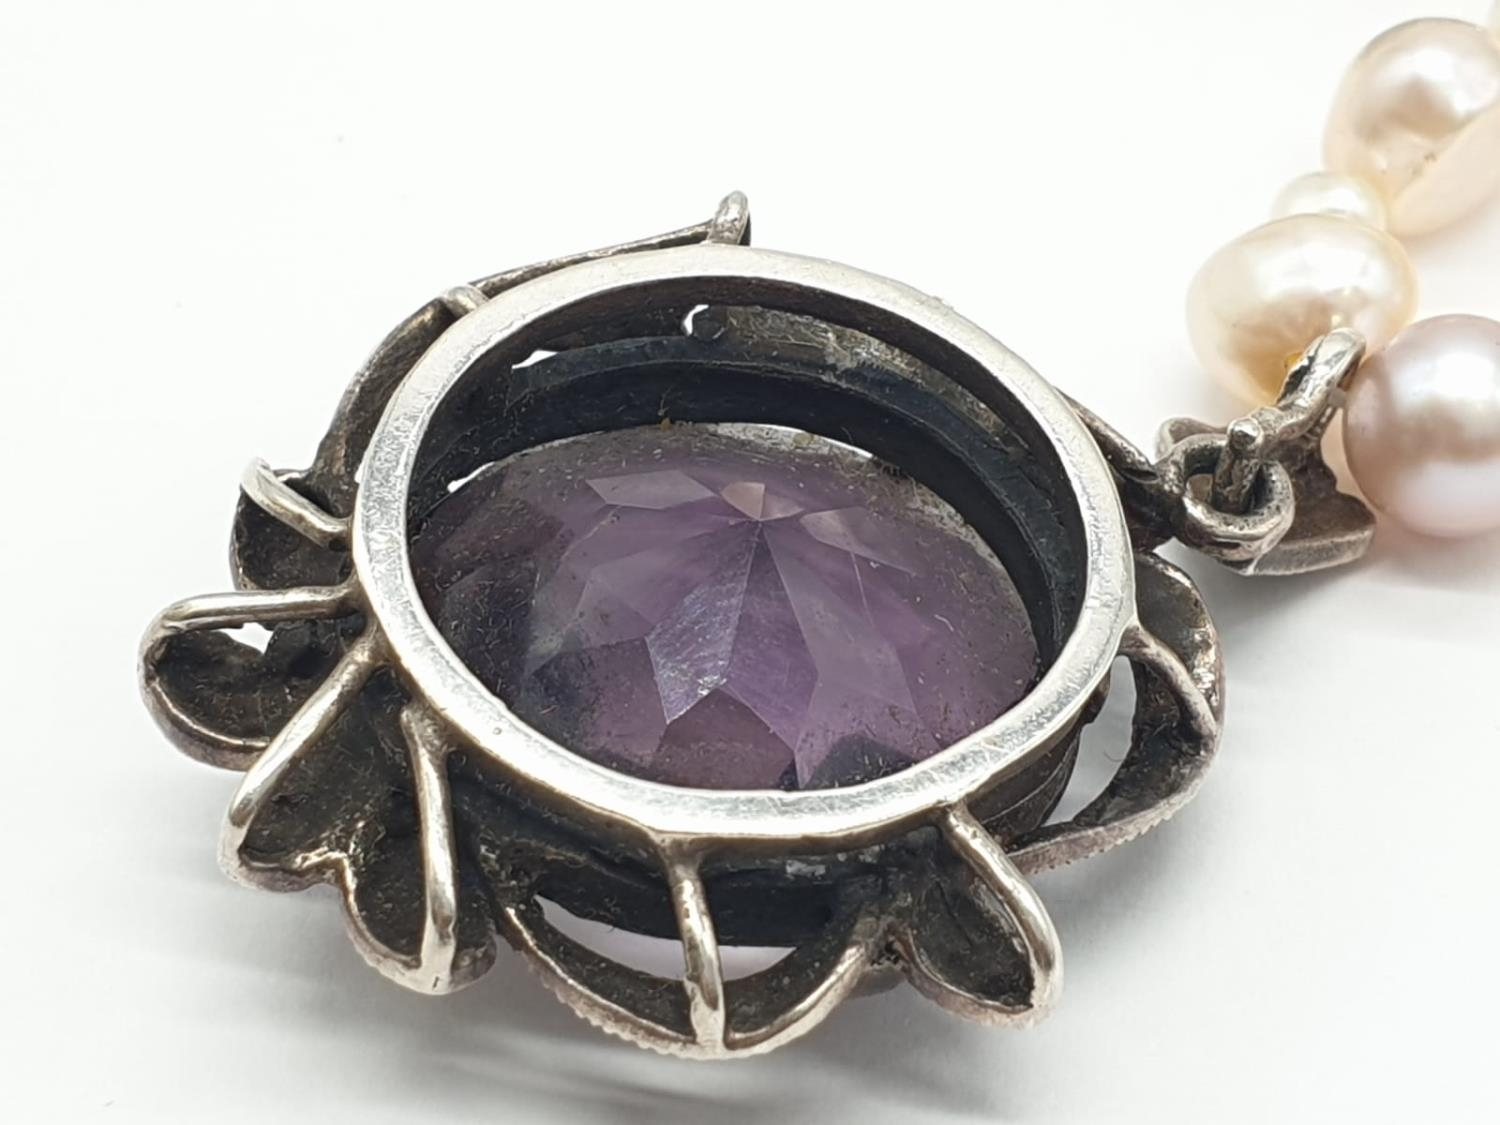 Amethyst and Marcasite NECKLACE with Freshwater Pearl and Silver setting. 40g 44cm - Image 5 of 8